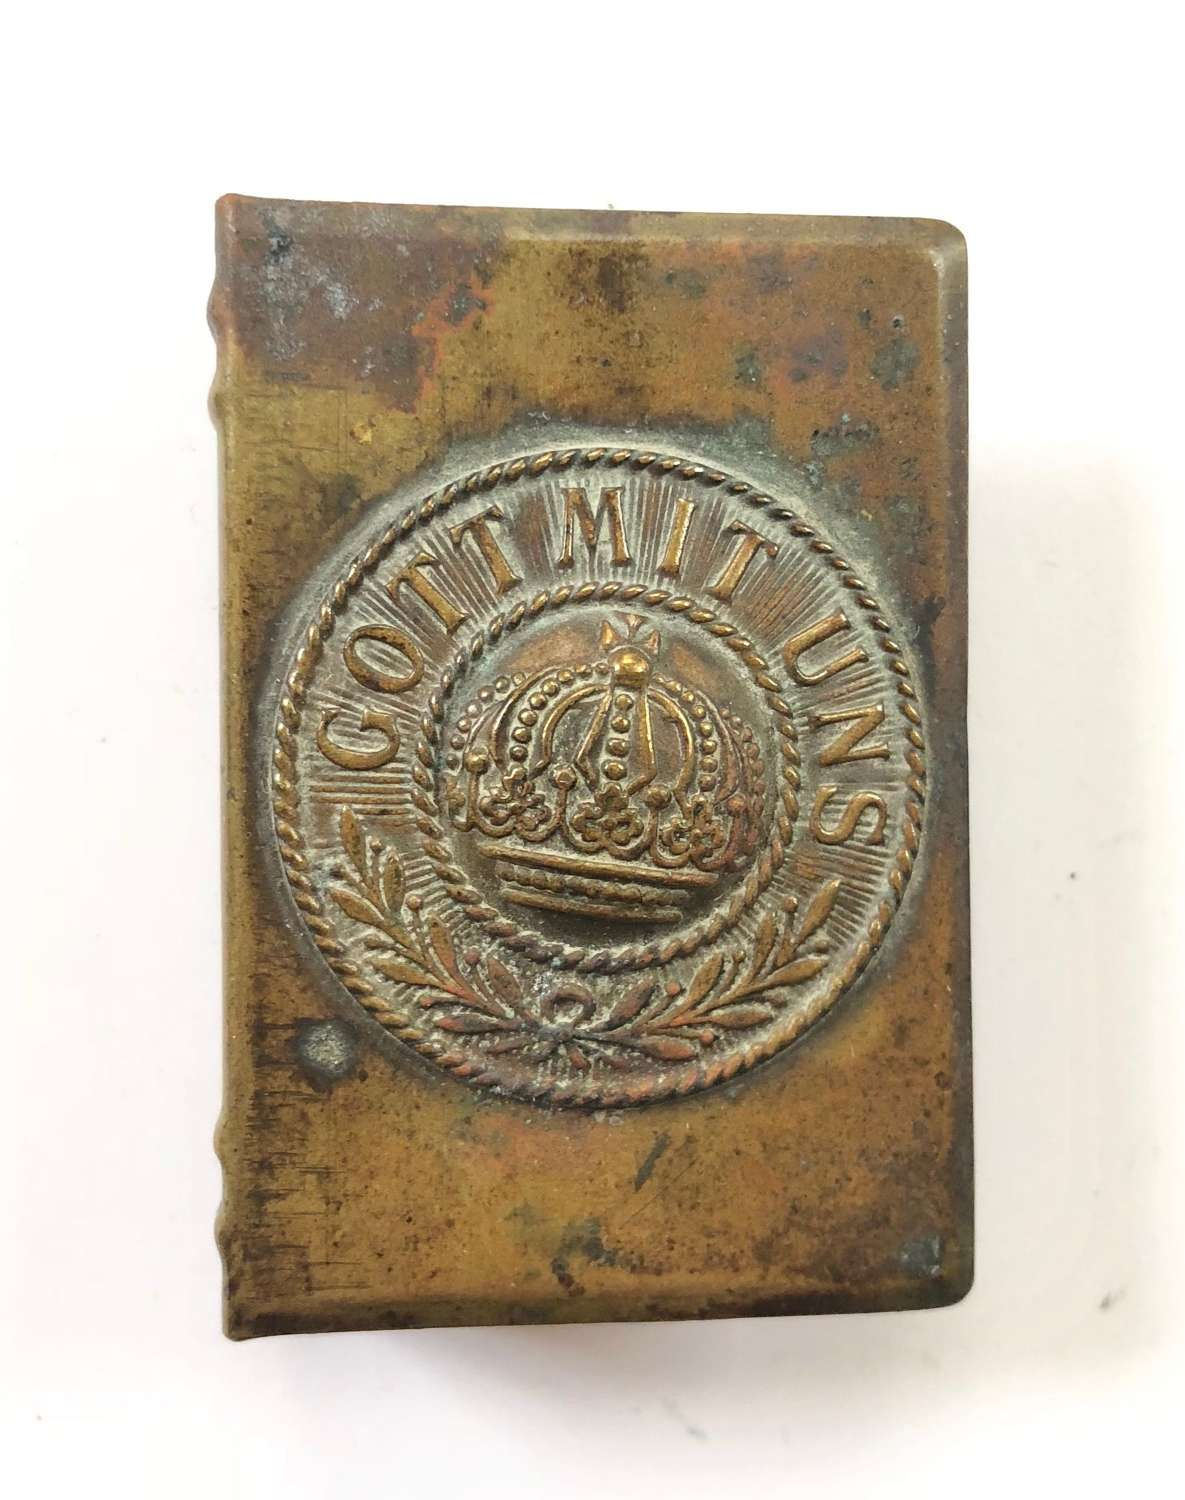 WW1 Trench Art German Buckle Matchbox Cover.